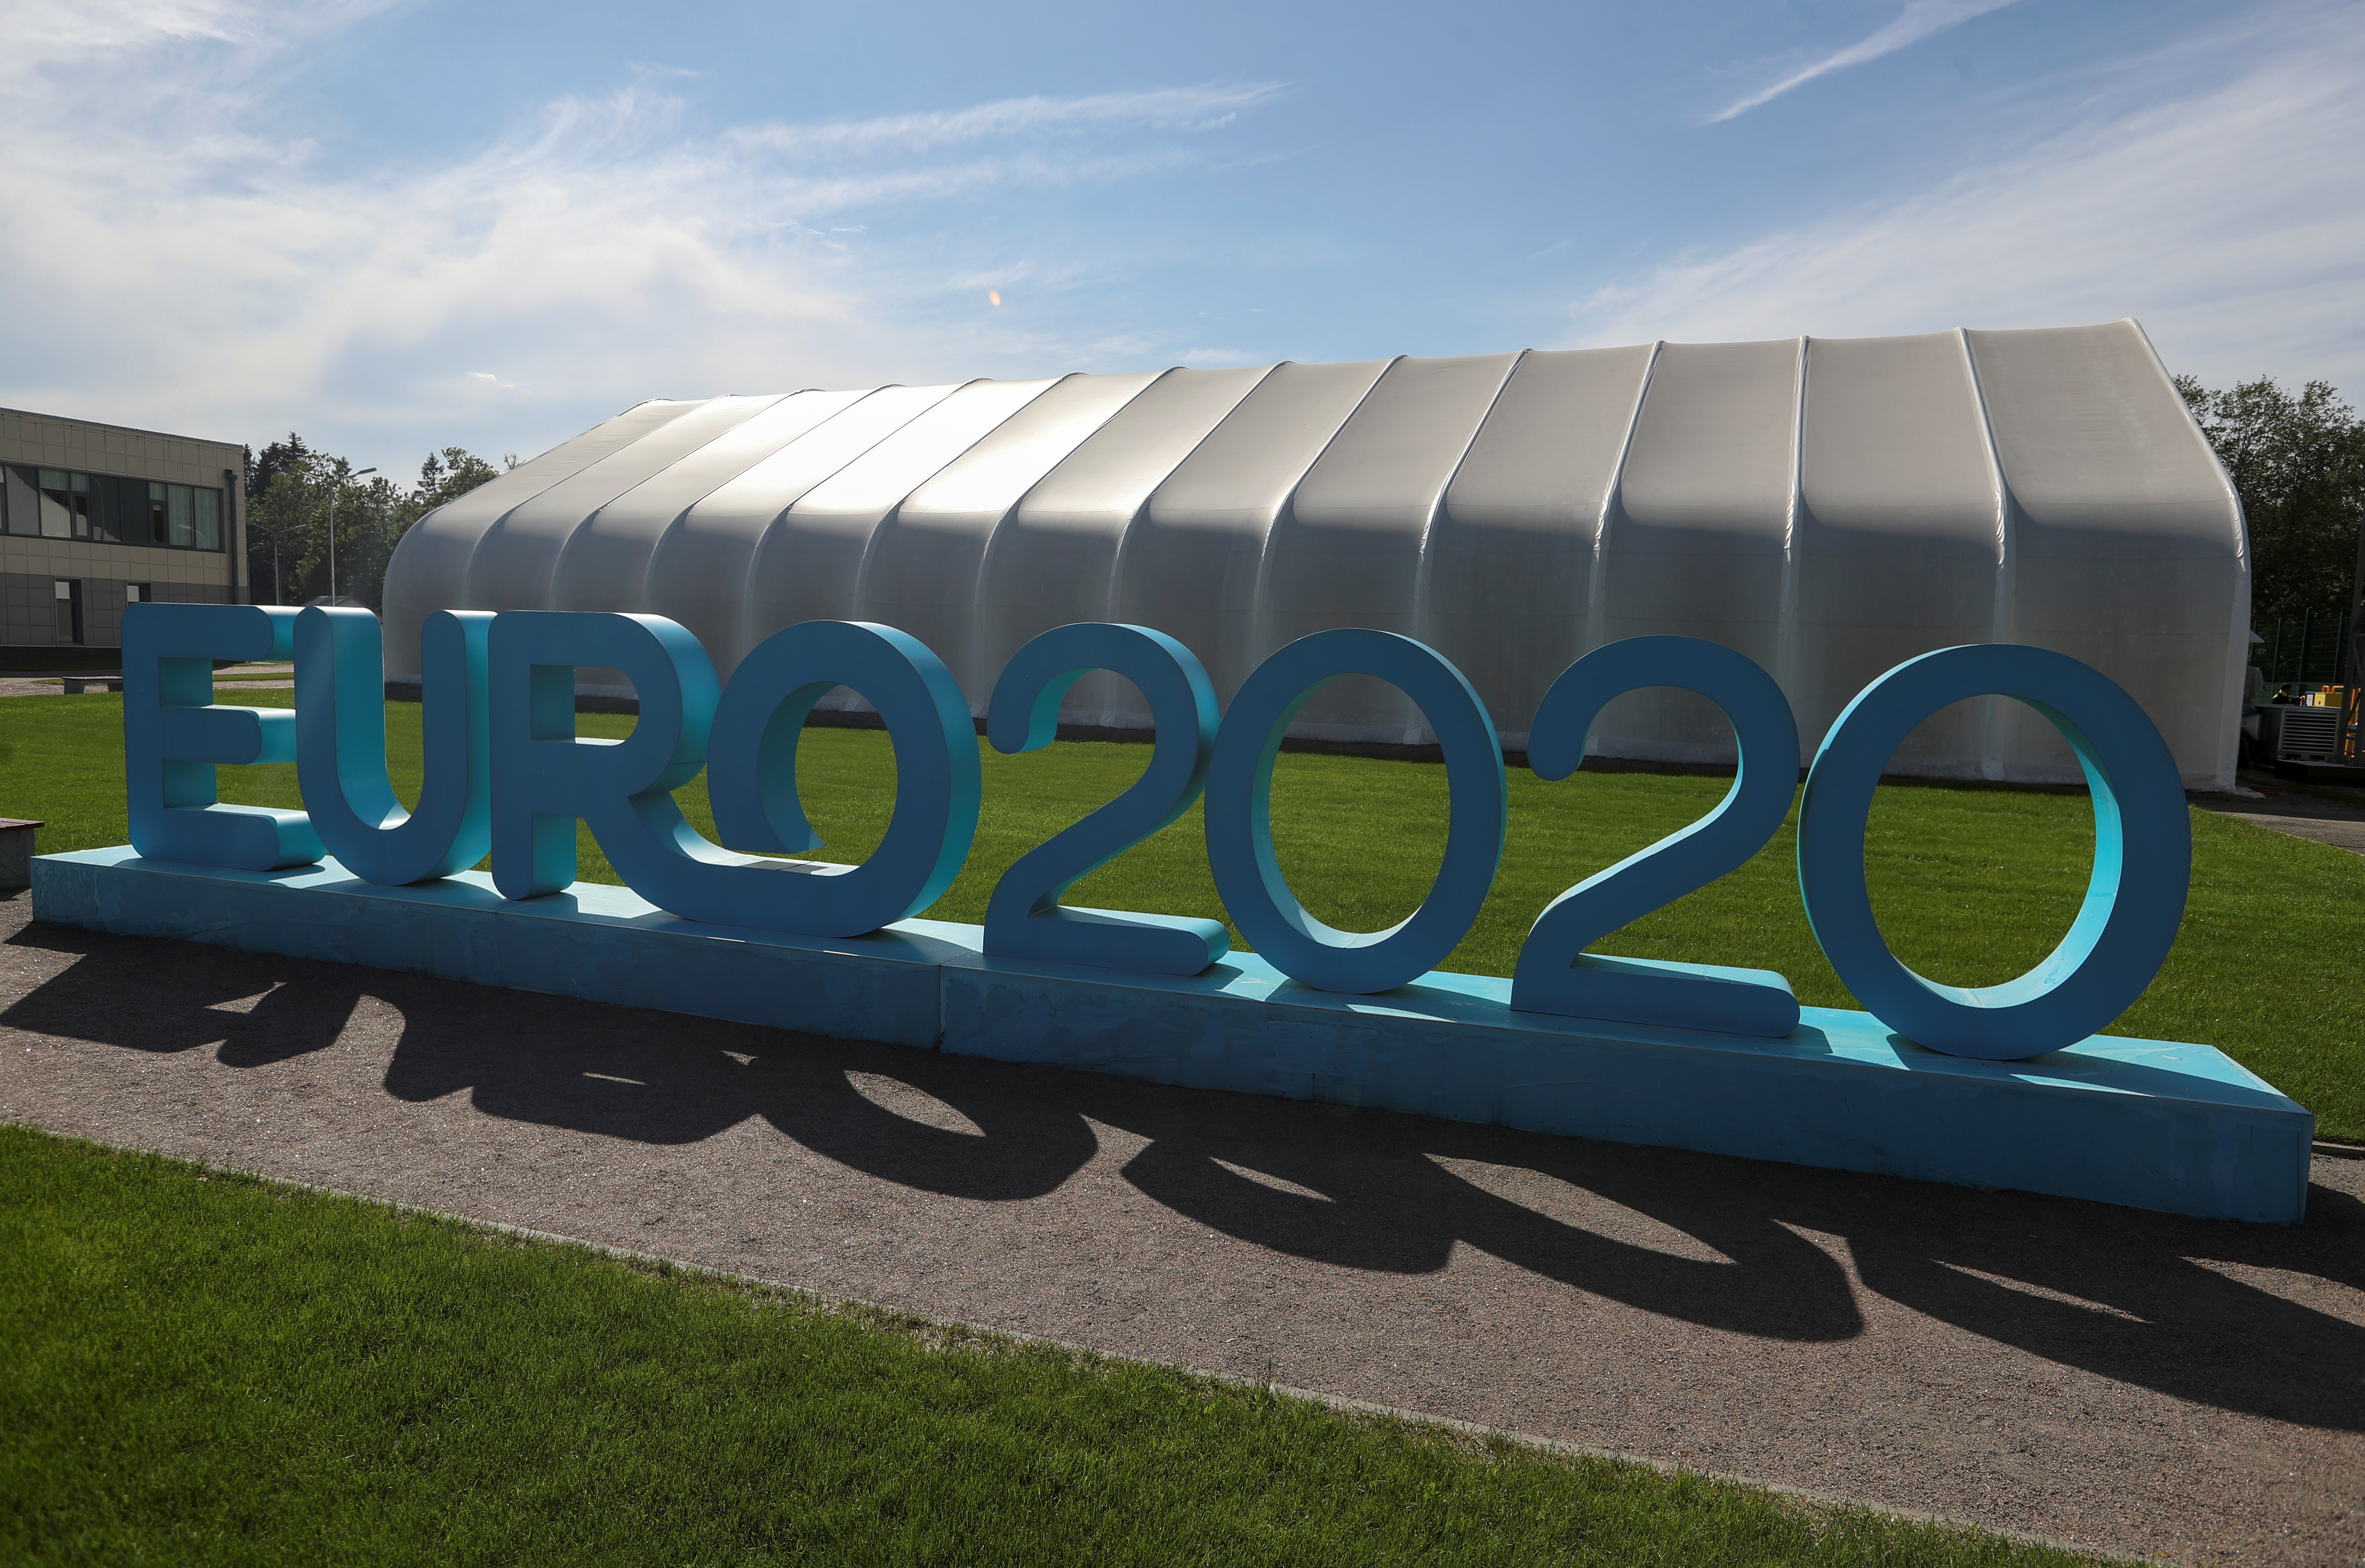 An exterior view shows a soccer base, which is Finland's team camp during the upcoming Euro 2020 tournament, in Saint Petersburg, Russia June 5, 2021. REUTERS/Igor Russak